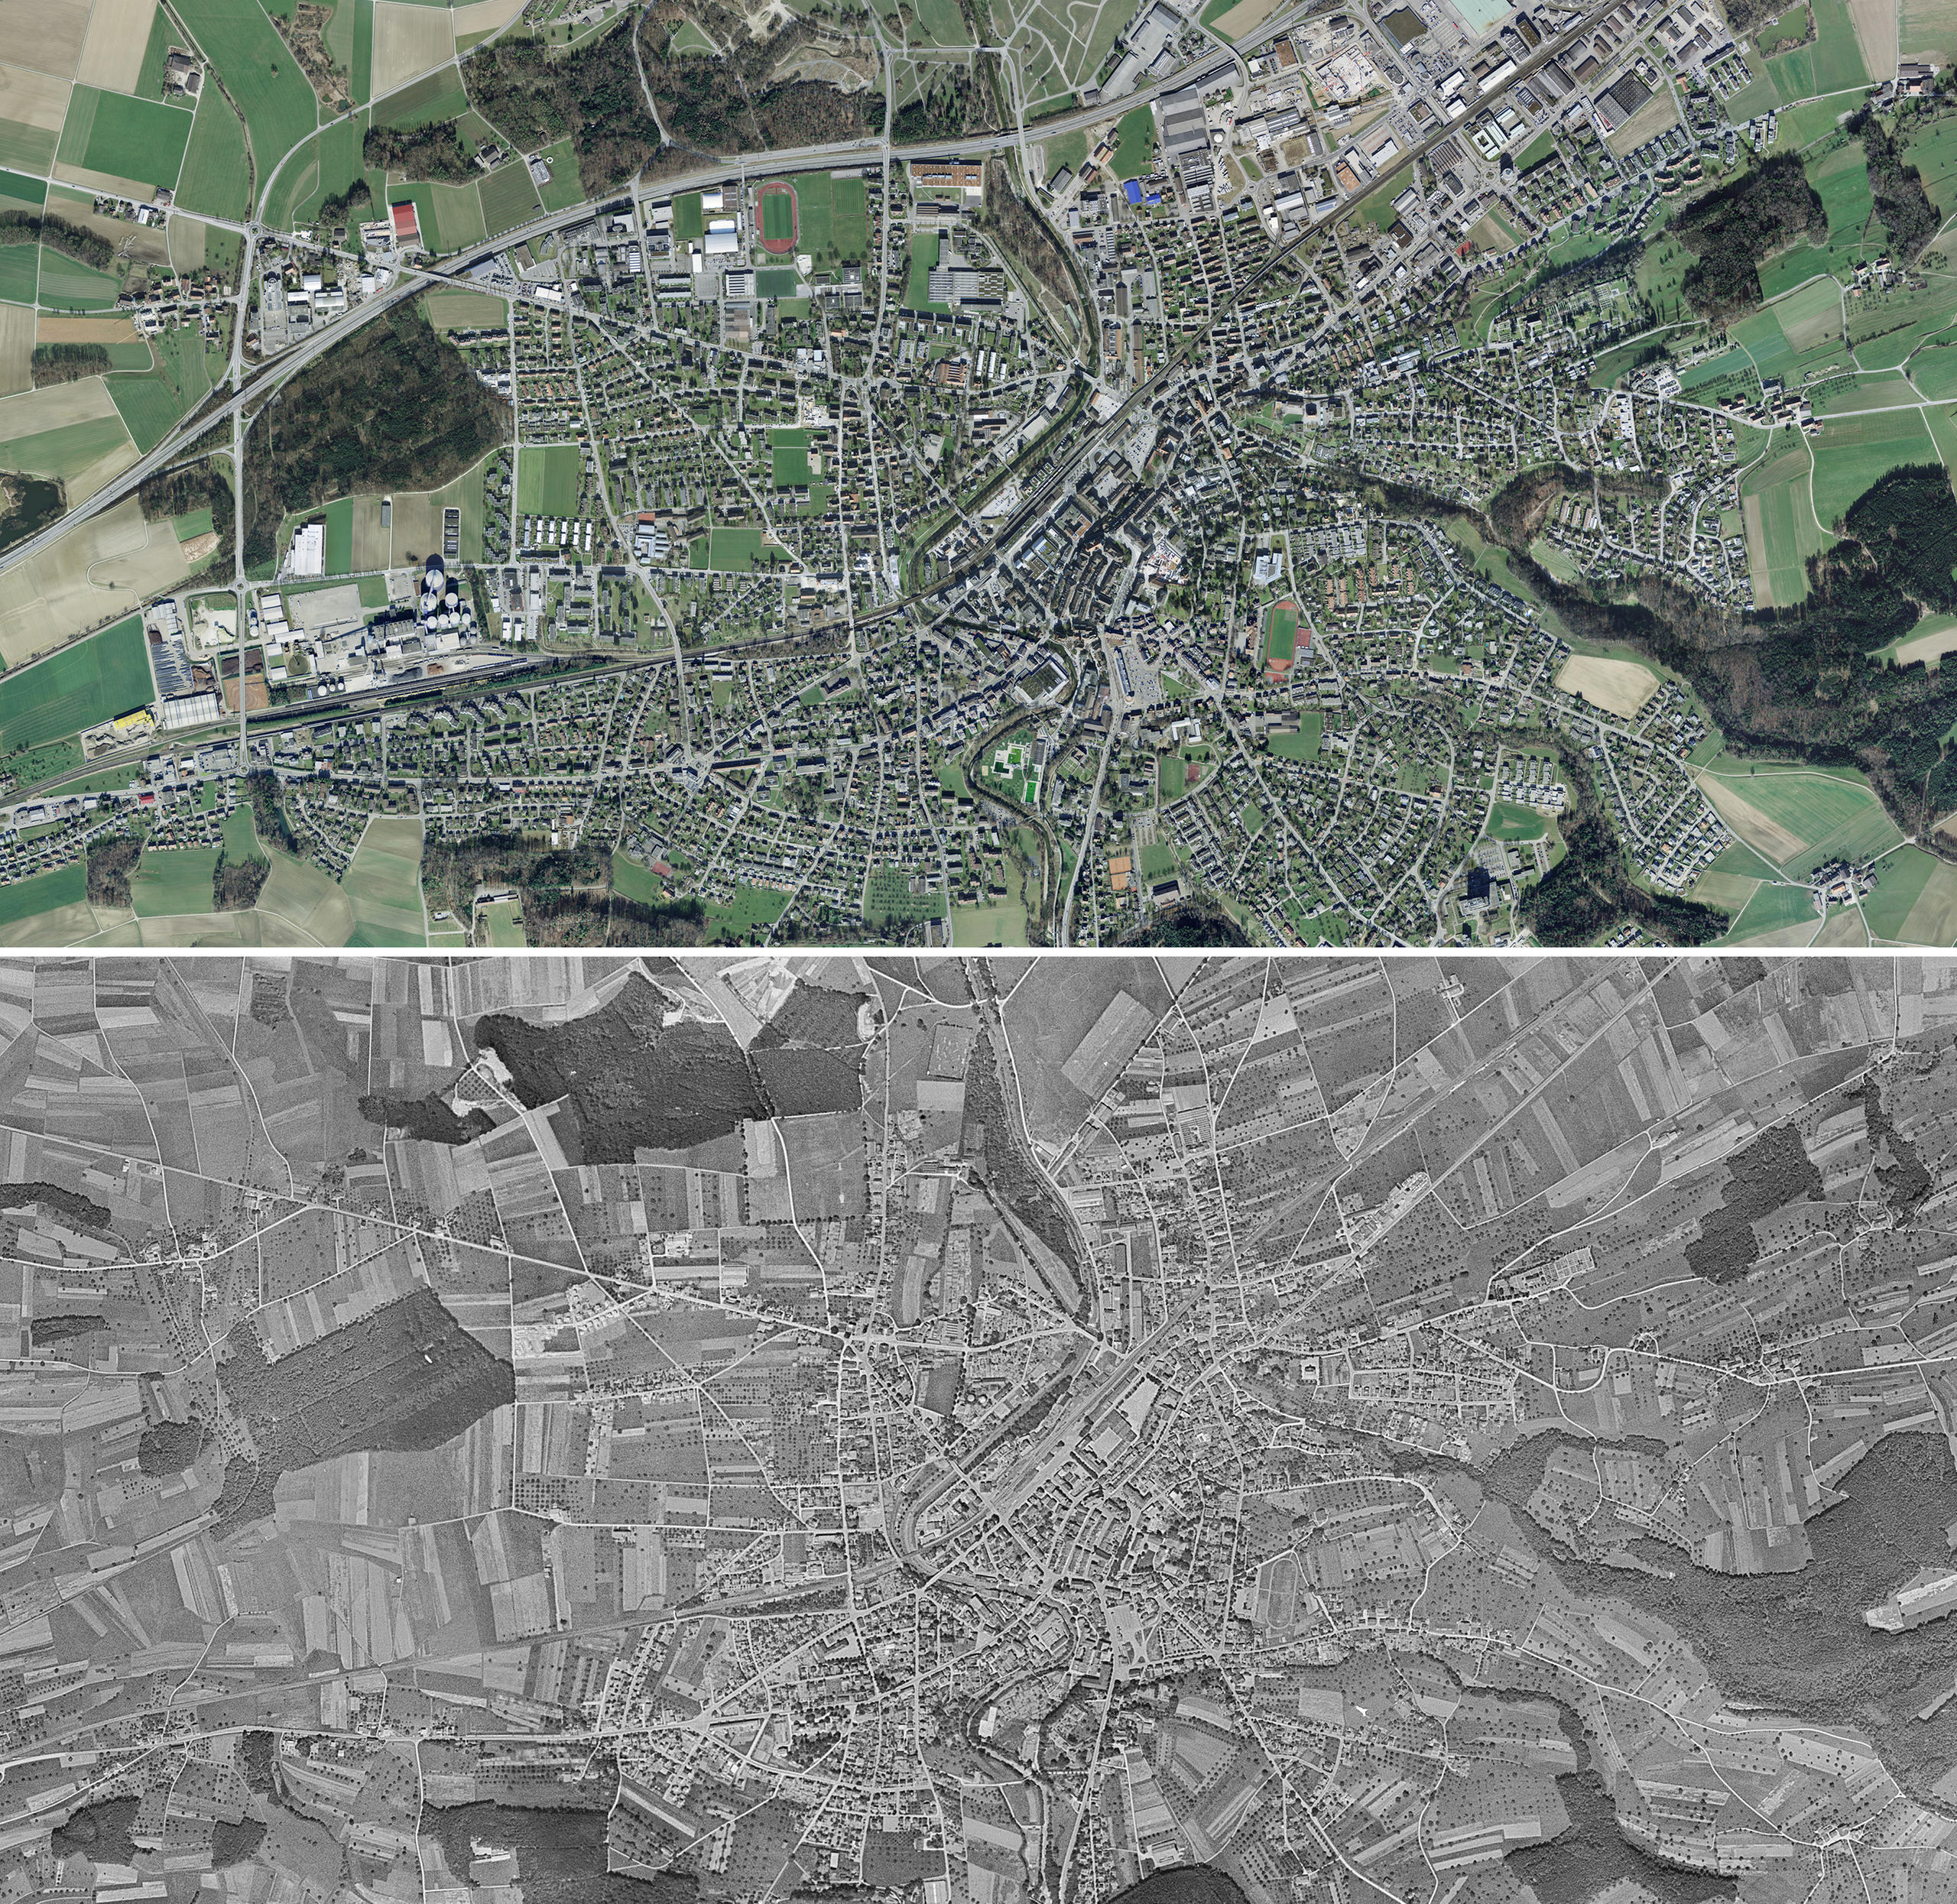 Aerial view of Frauenfeld above 2014 and below in 1946